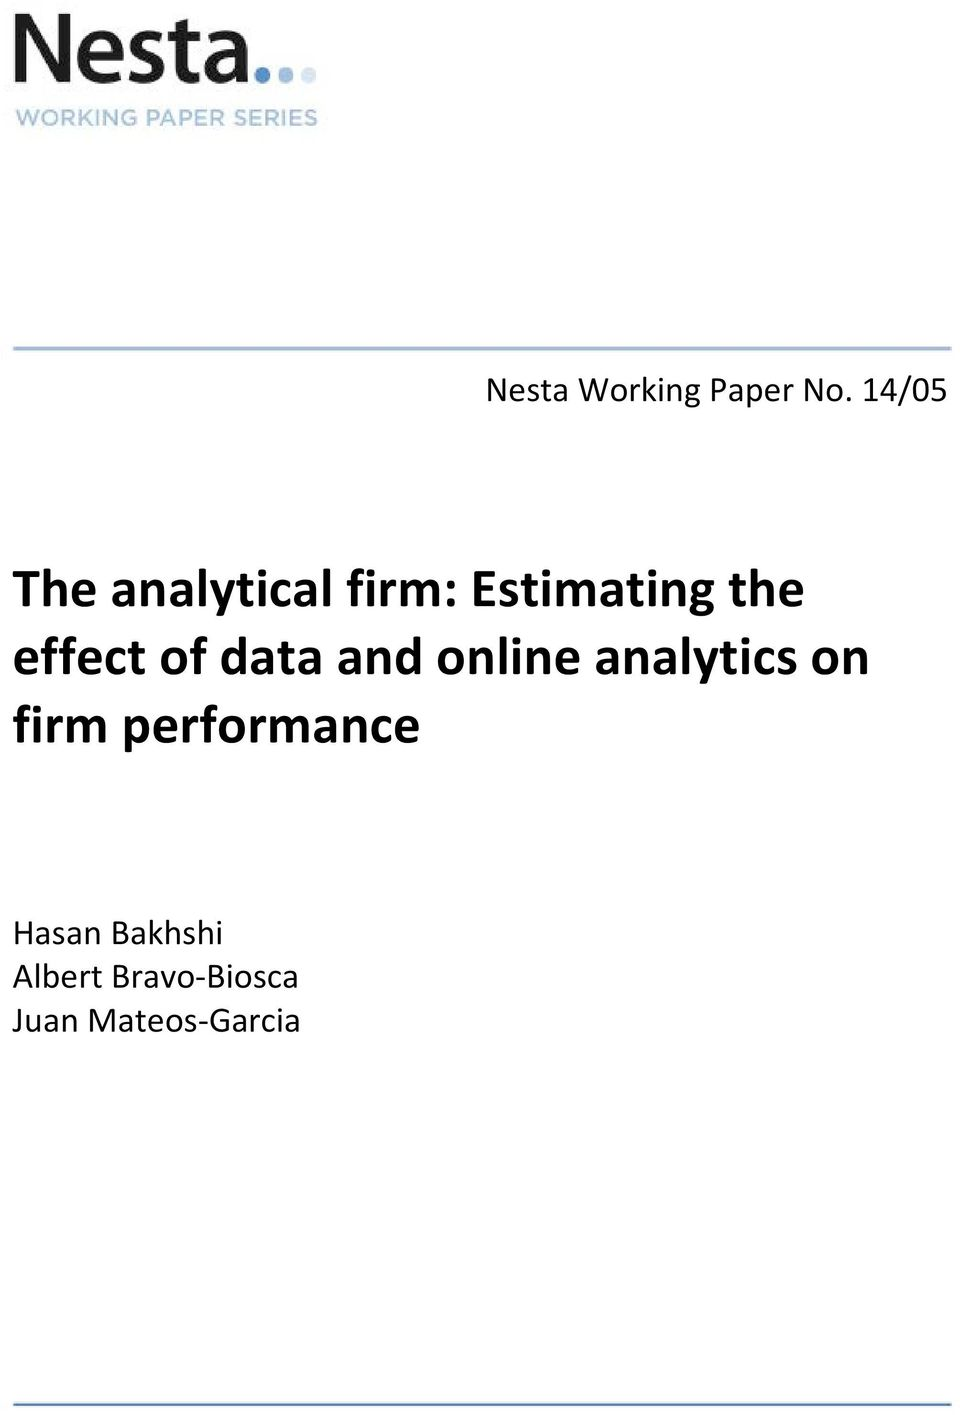 effect of data and online analytics on firm